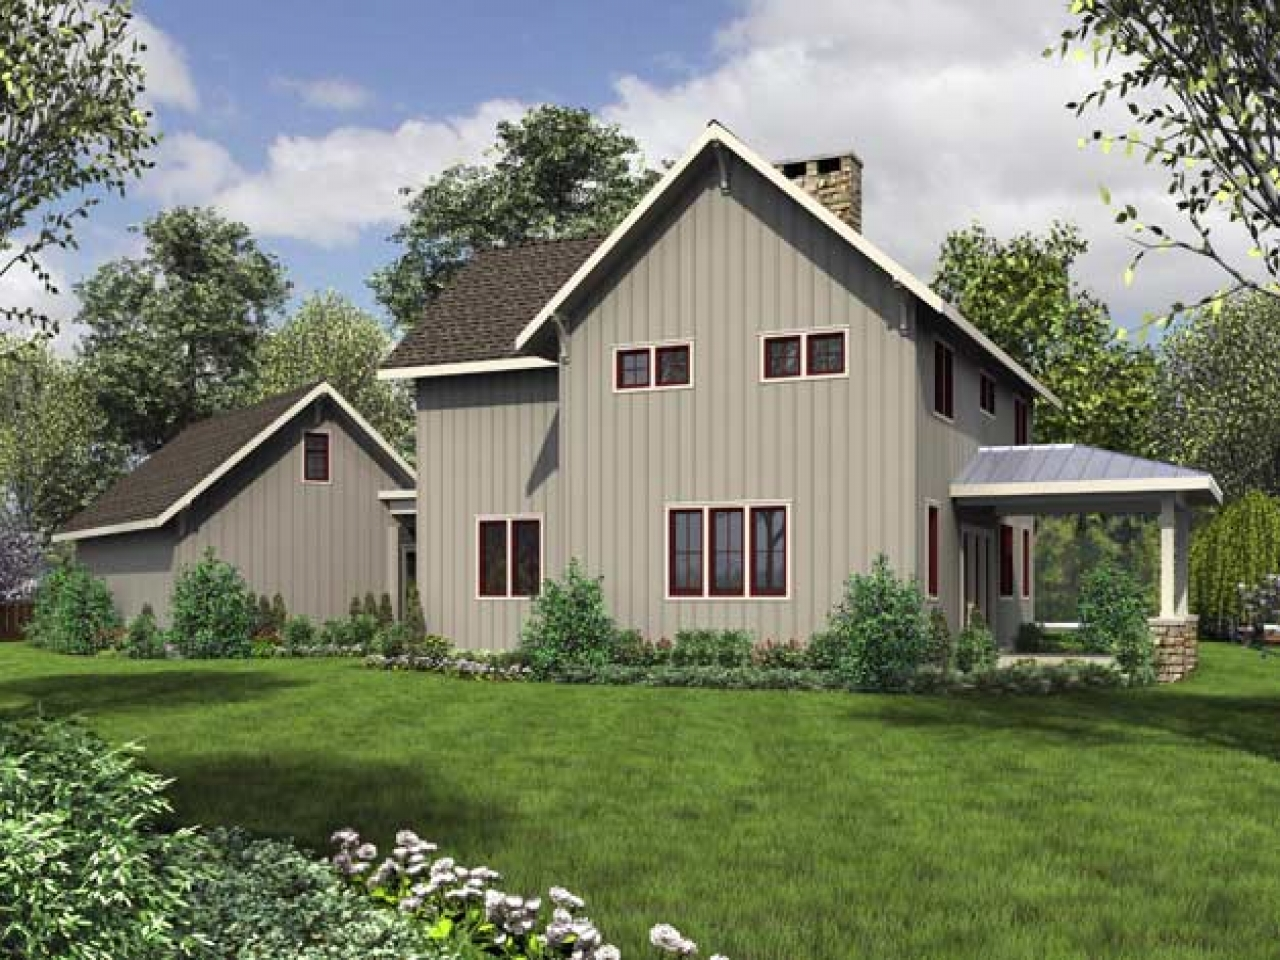 Award winning small modern house plans award winning for Award winning ranch house plans